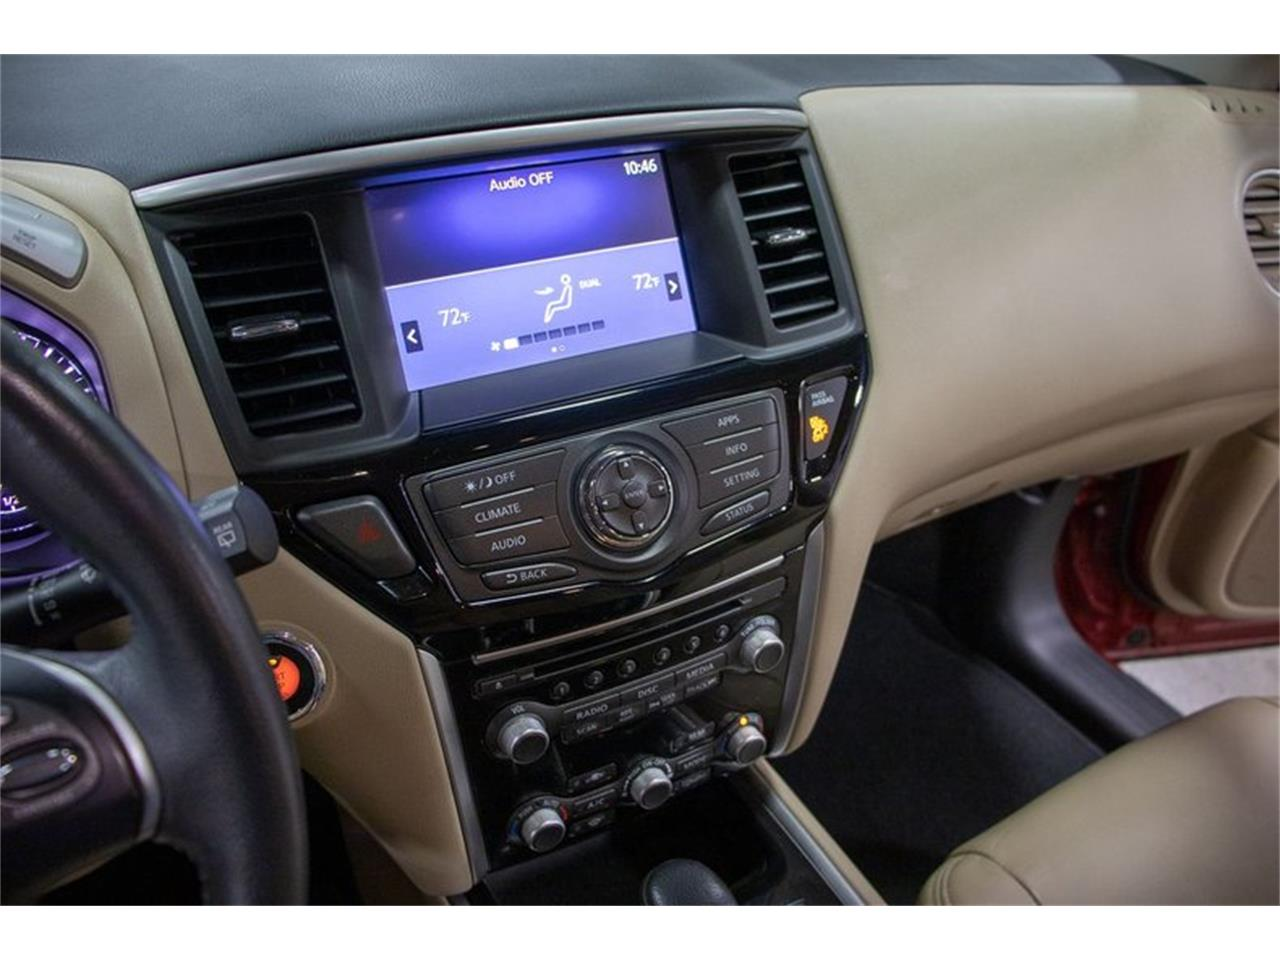 2017 Nissan Pathfinder (CC-1380719) for sale in Kentwood, Michigan